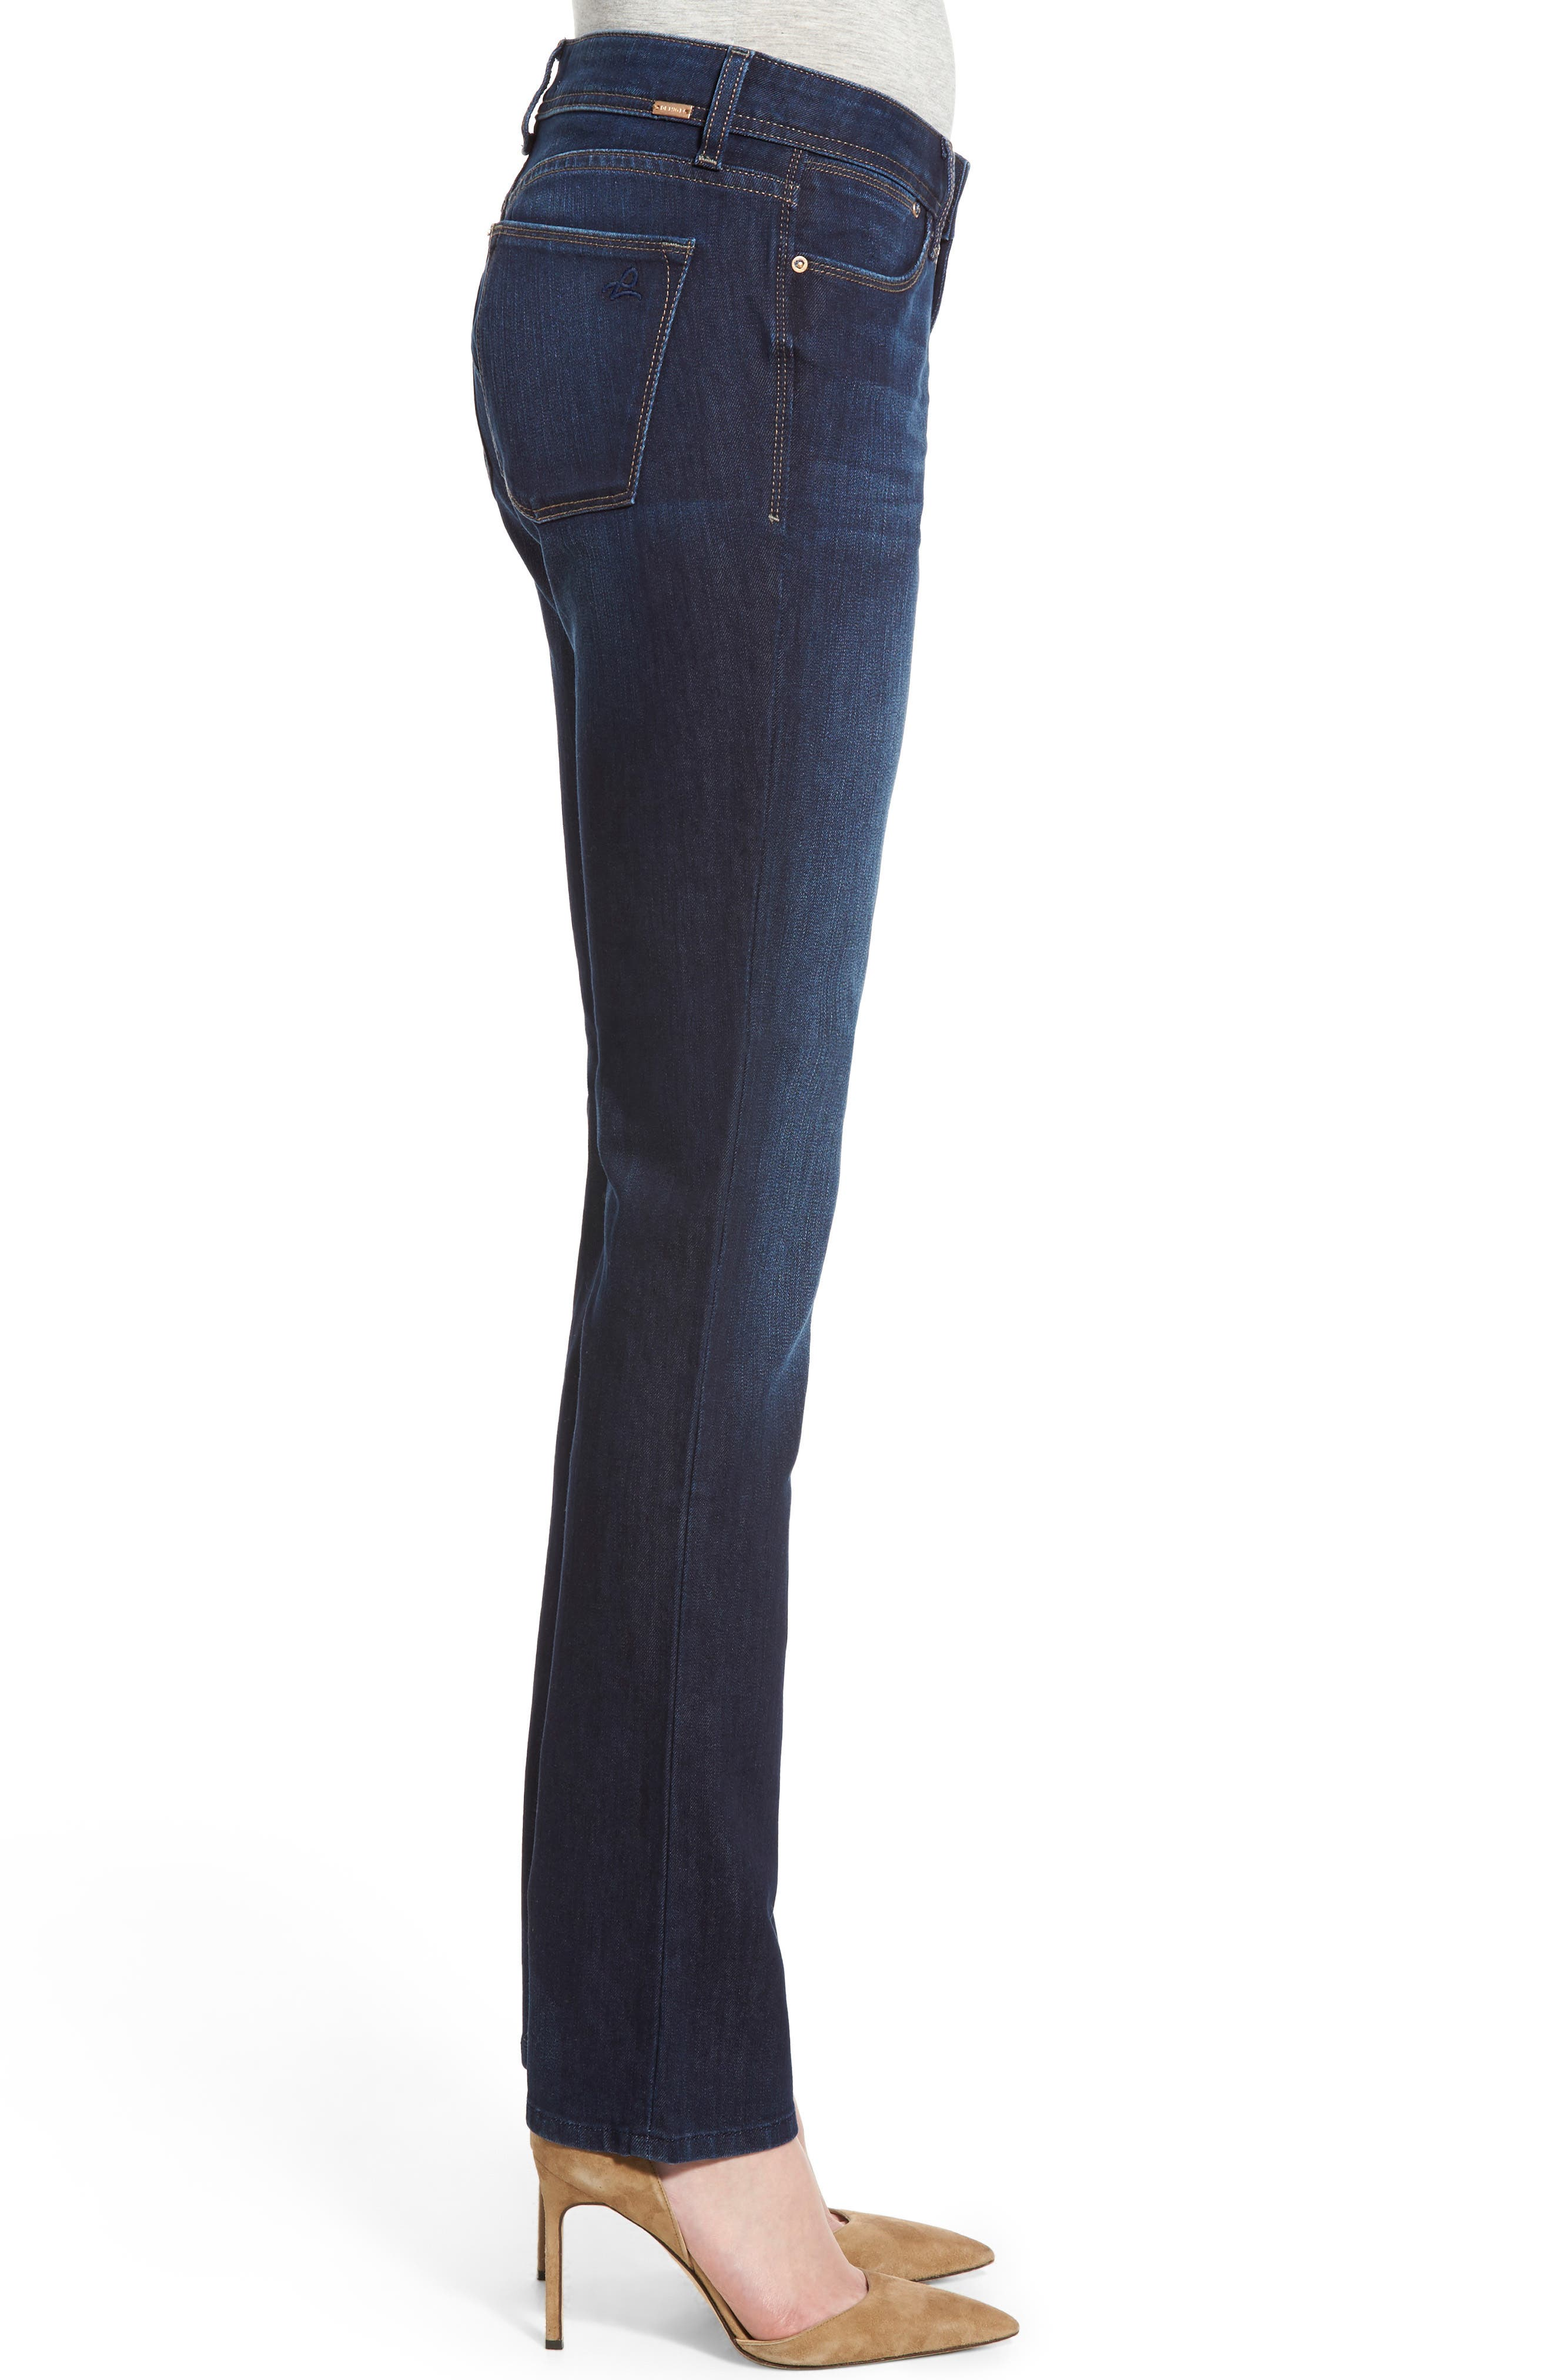 'Coco' Curvy Straight Jeans,                             Alternate thumbnail 3, color,                             SOLO